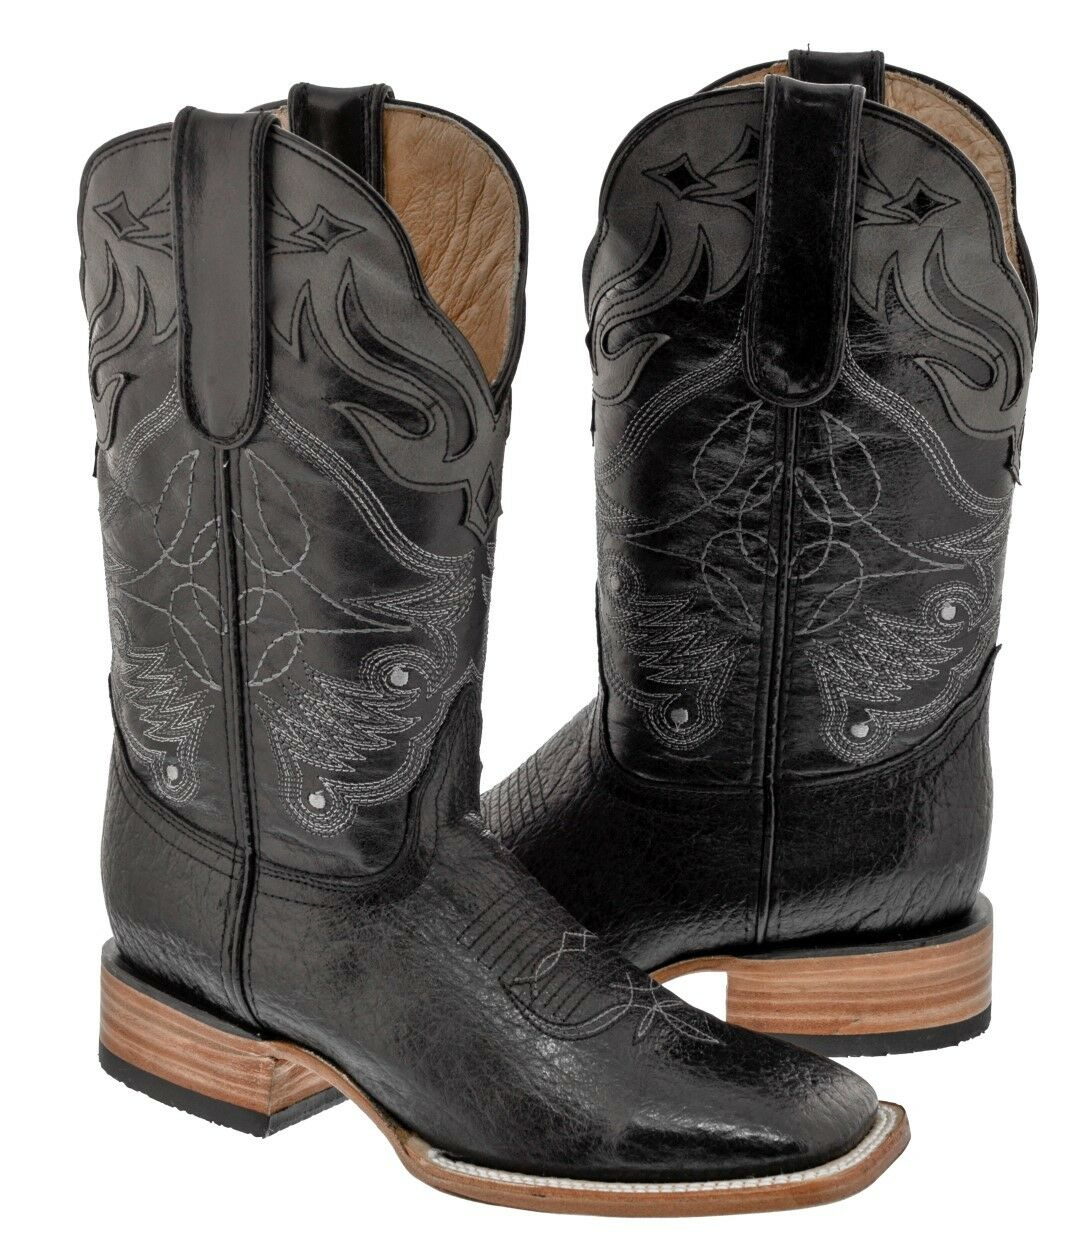 Mens Jet Black Gray Overlay Western Design Leather Cowboy Boots Western Overlay Wear Square Toe ea321c